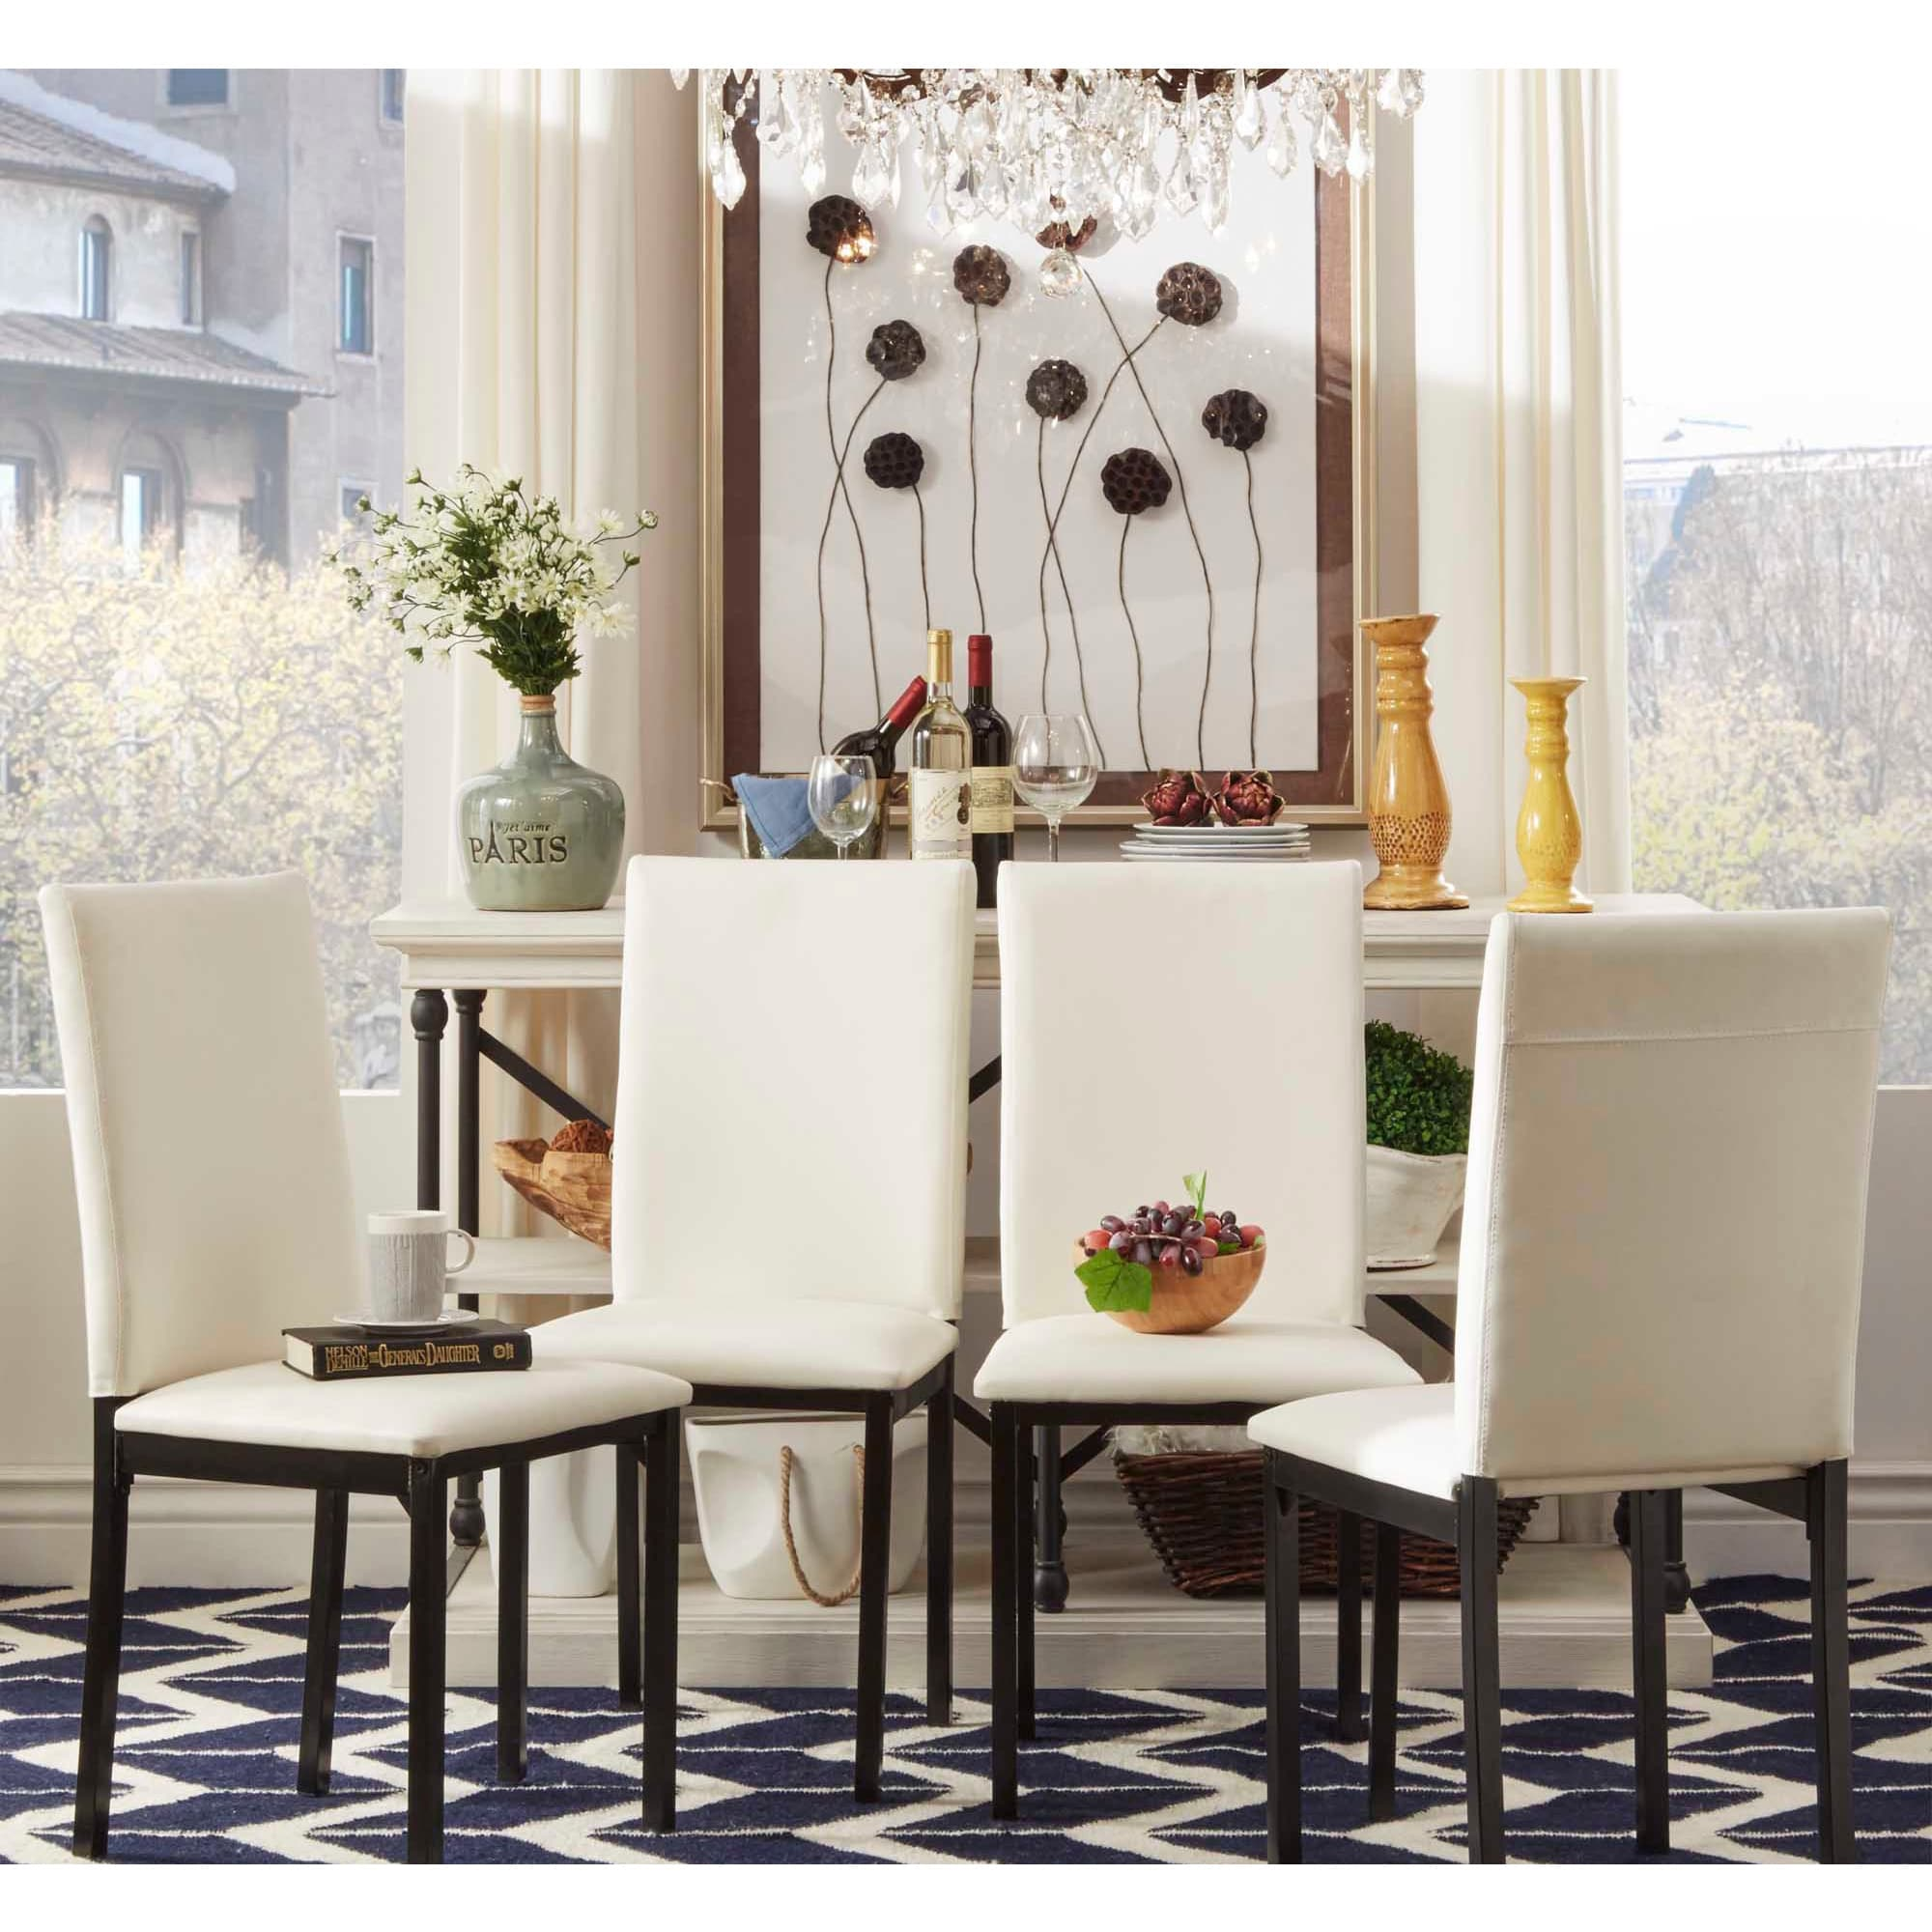 Buy white kitchen dining room chairs online at overstock com our best dining room bar furniture deals